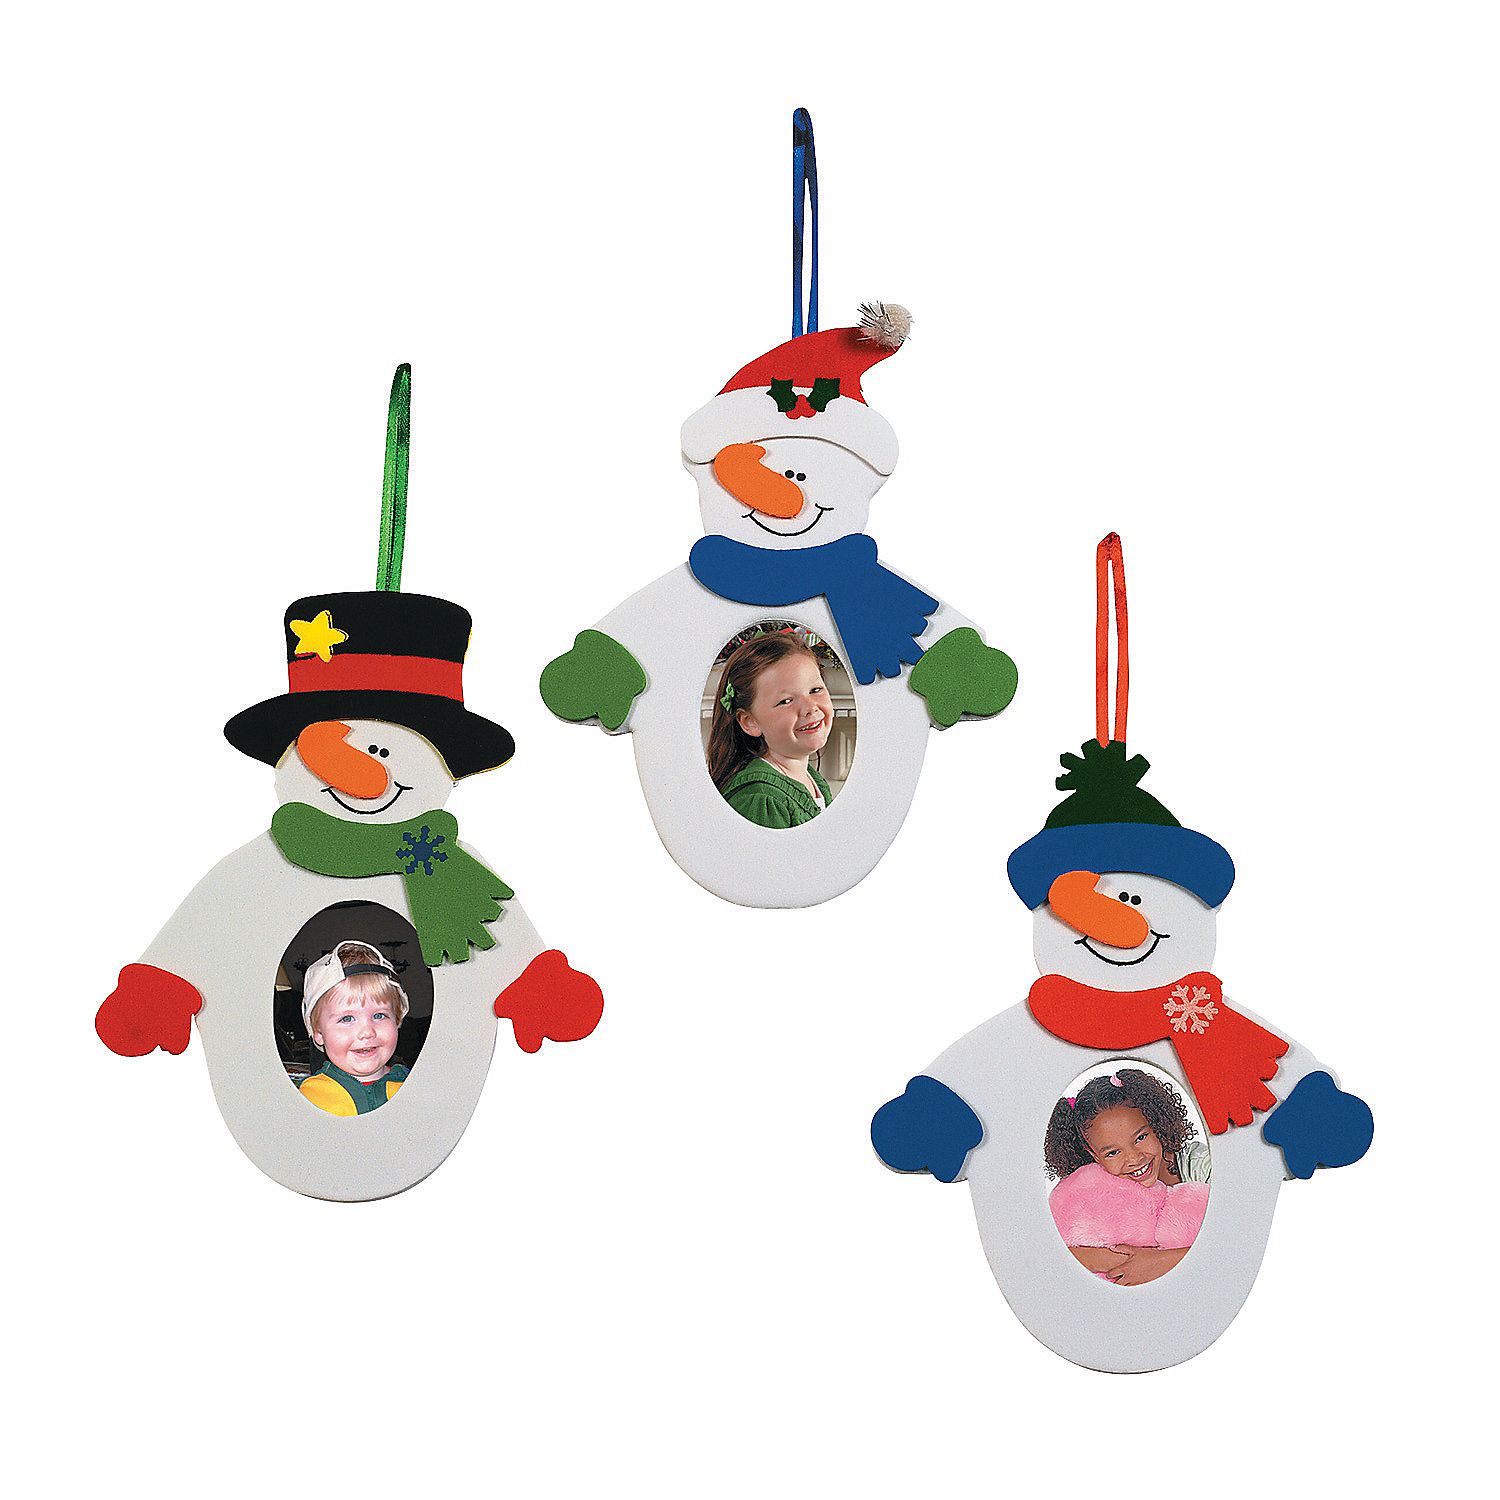 Snowman picture frame ornament craft kit oriental trading for Photo frame ornament craft